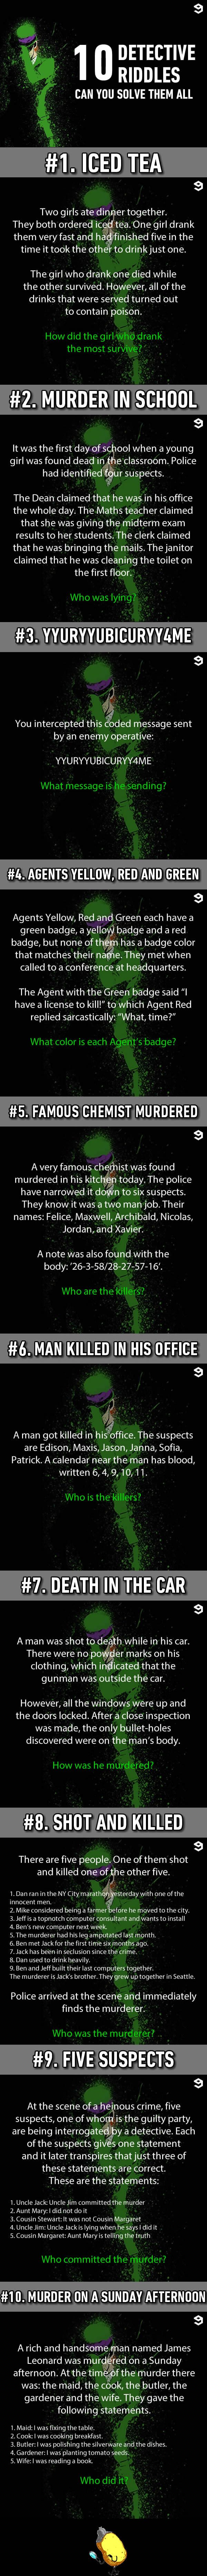 10 Murder Riddles That Would Bring Out The Sherlock In You